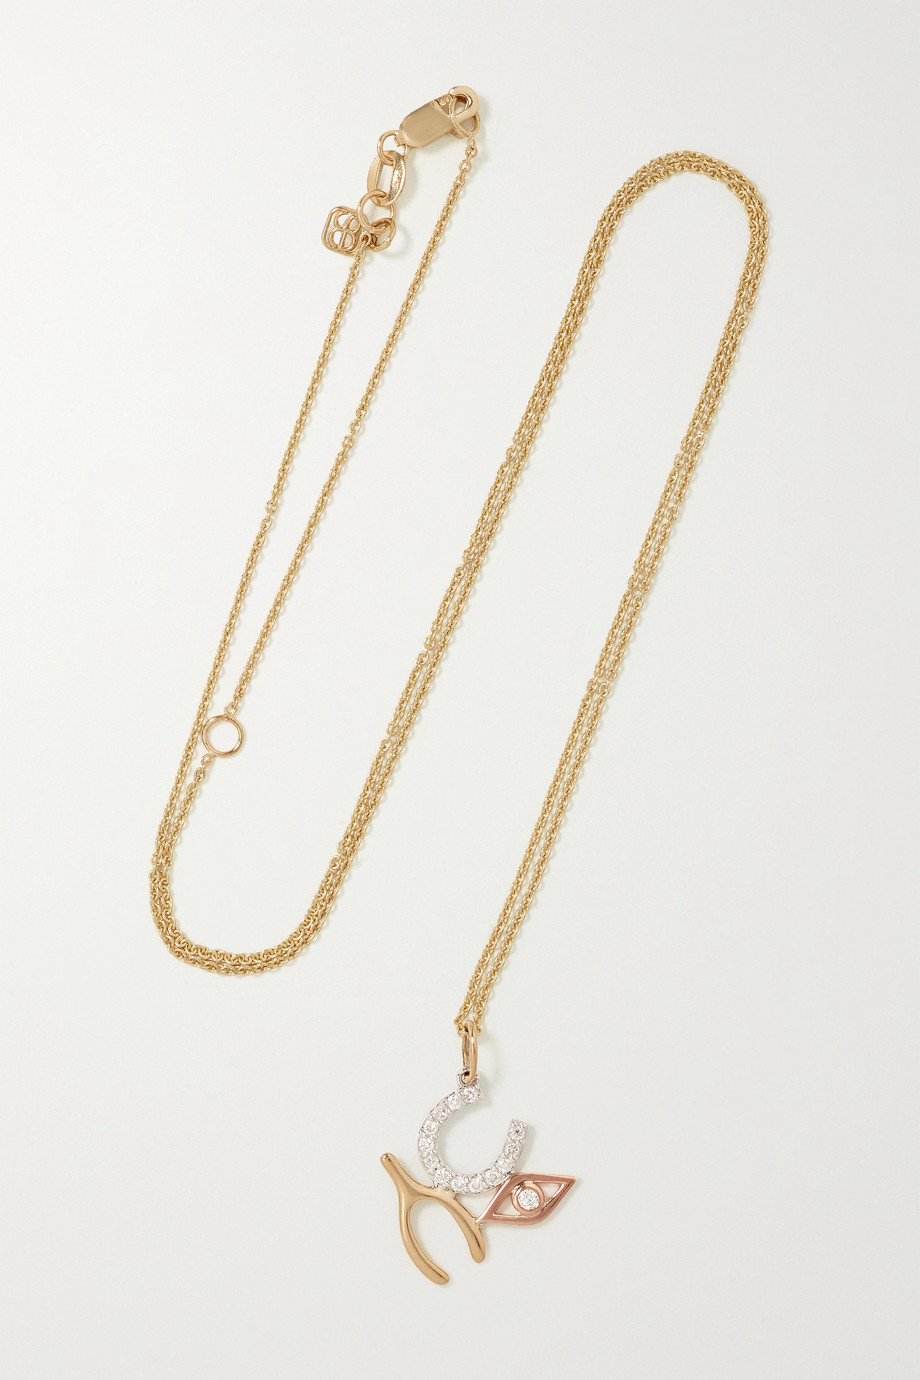 Sydney Evan Luck and Protection 14-karat yellow, white and rose gold diamond necklace